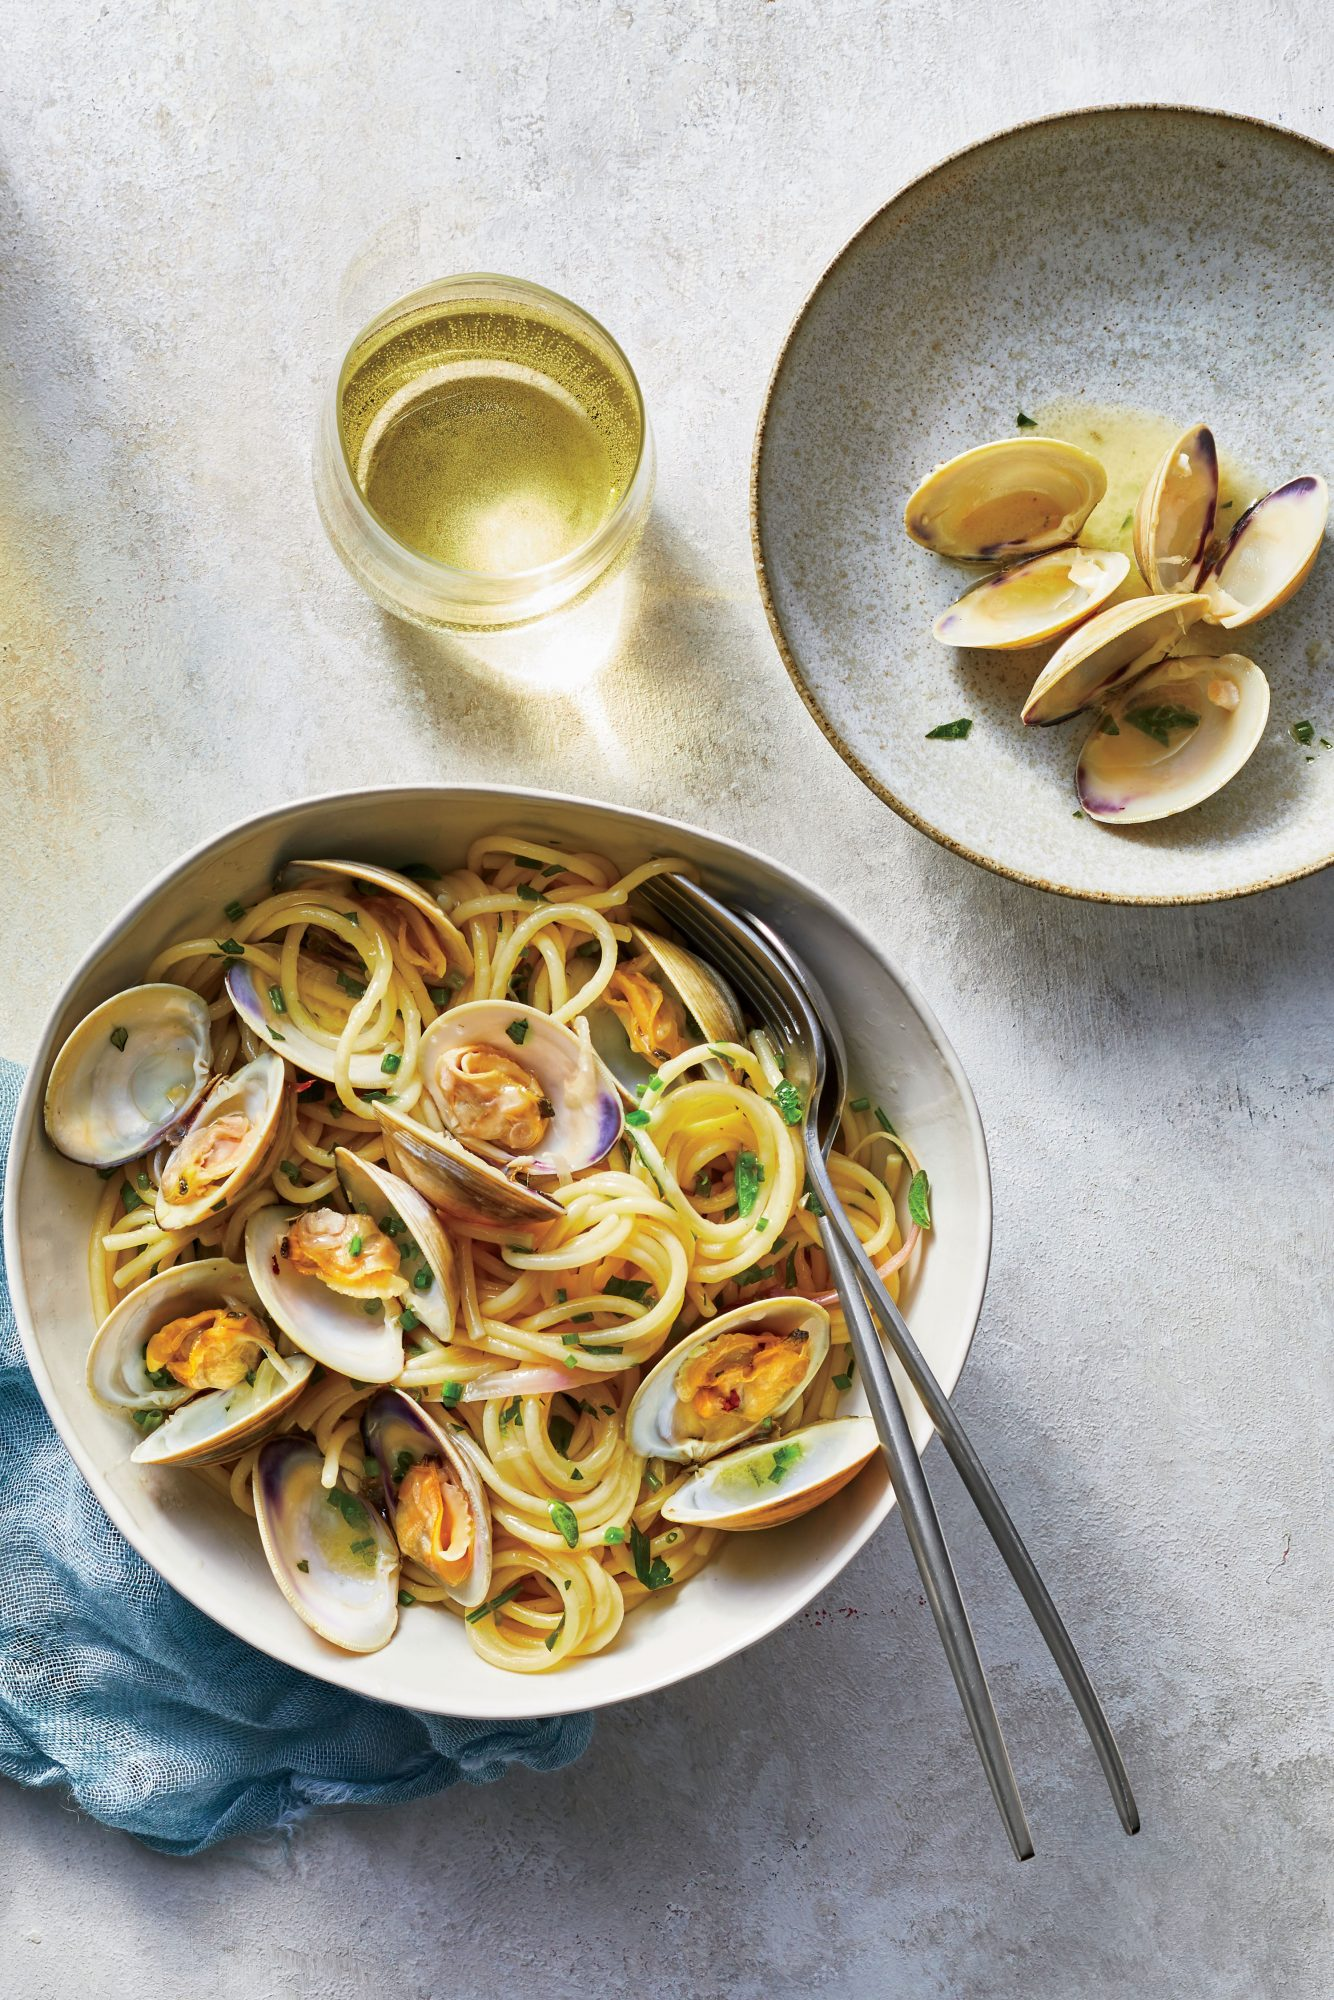 Spaghetti with Clams, Bonito Butter, and Herbs